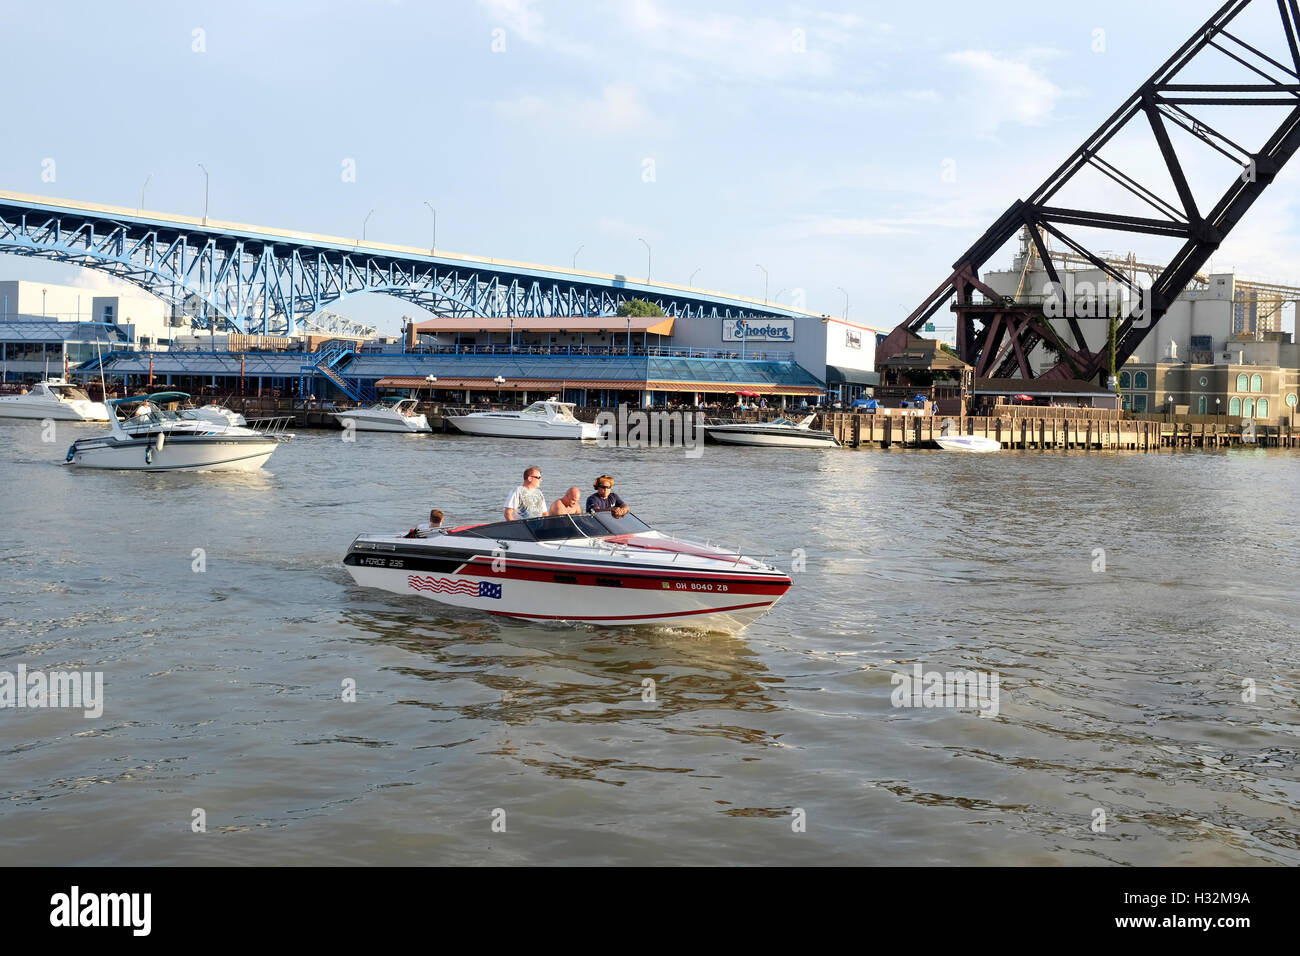 Boaters on the Cuyahoga River in The Flats in Cleveland, Ohio - Stock Image